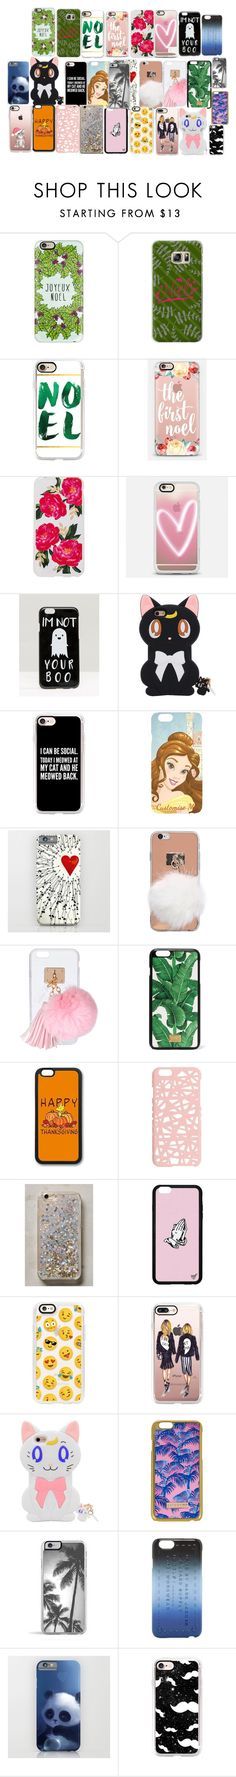 """iphone case #1"" by polyvorefan-563 ❤ liked on Polyvore featuring Casetify, Sonix, ASOS, Disney, Ashlyn'd, Dolce&Gabbana, Miss Selfridge, Anthropologie, Skinnydip and Zero Gravity"